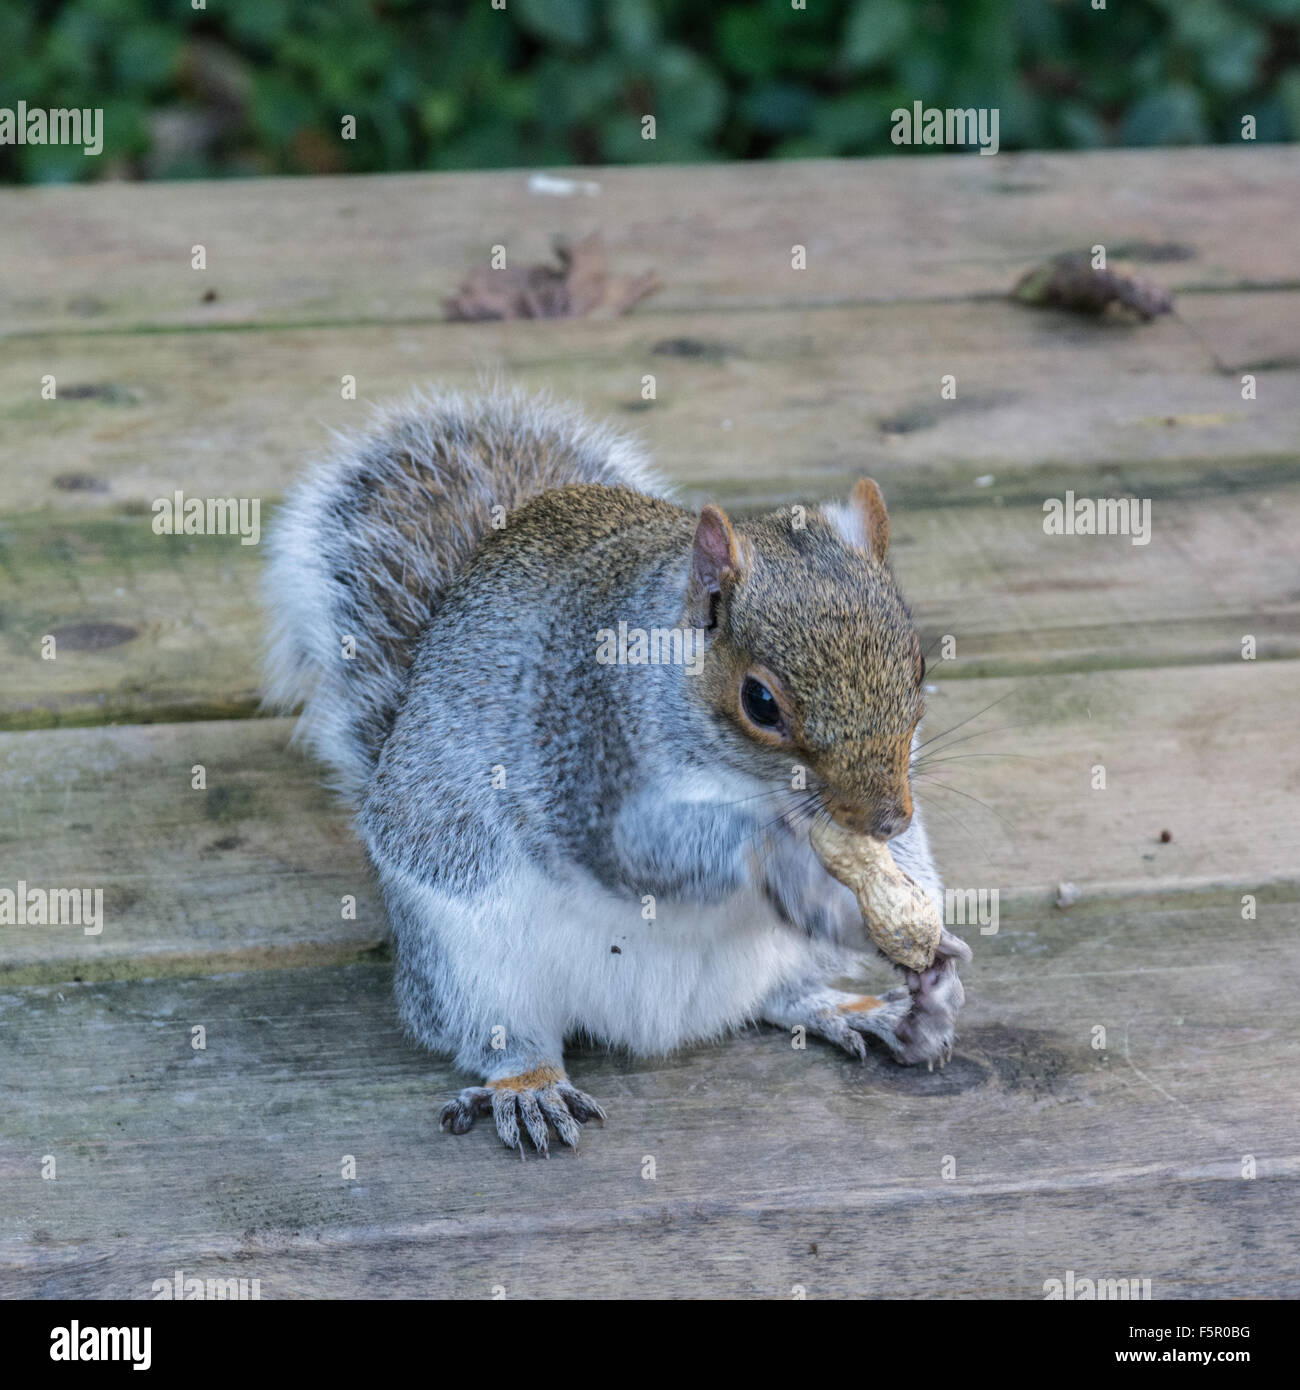 Grey Squirrel eating a nut on a park table - Stock Image